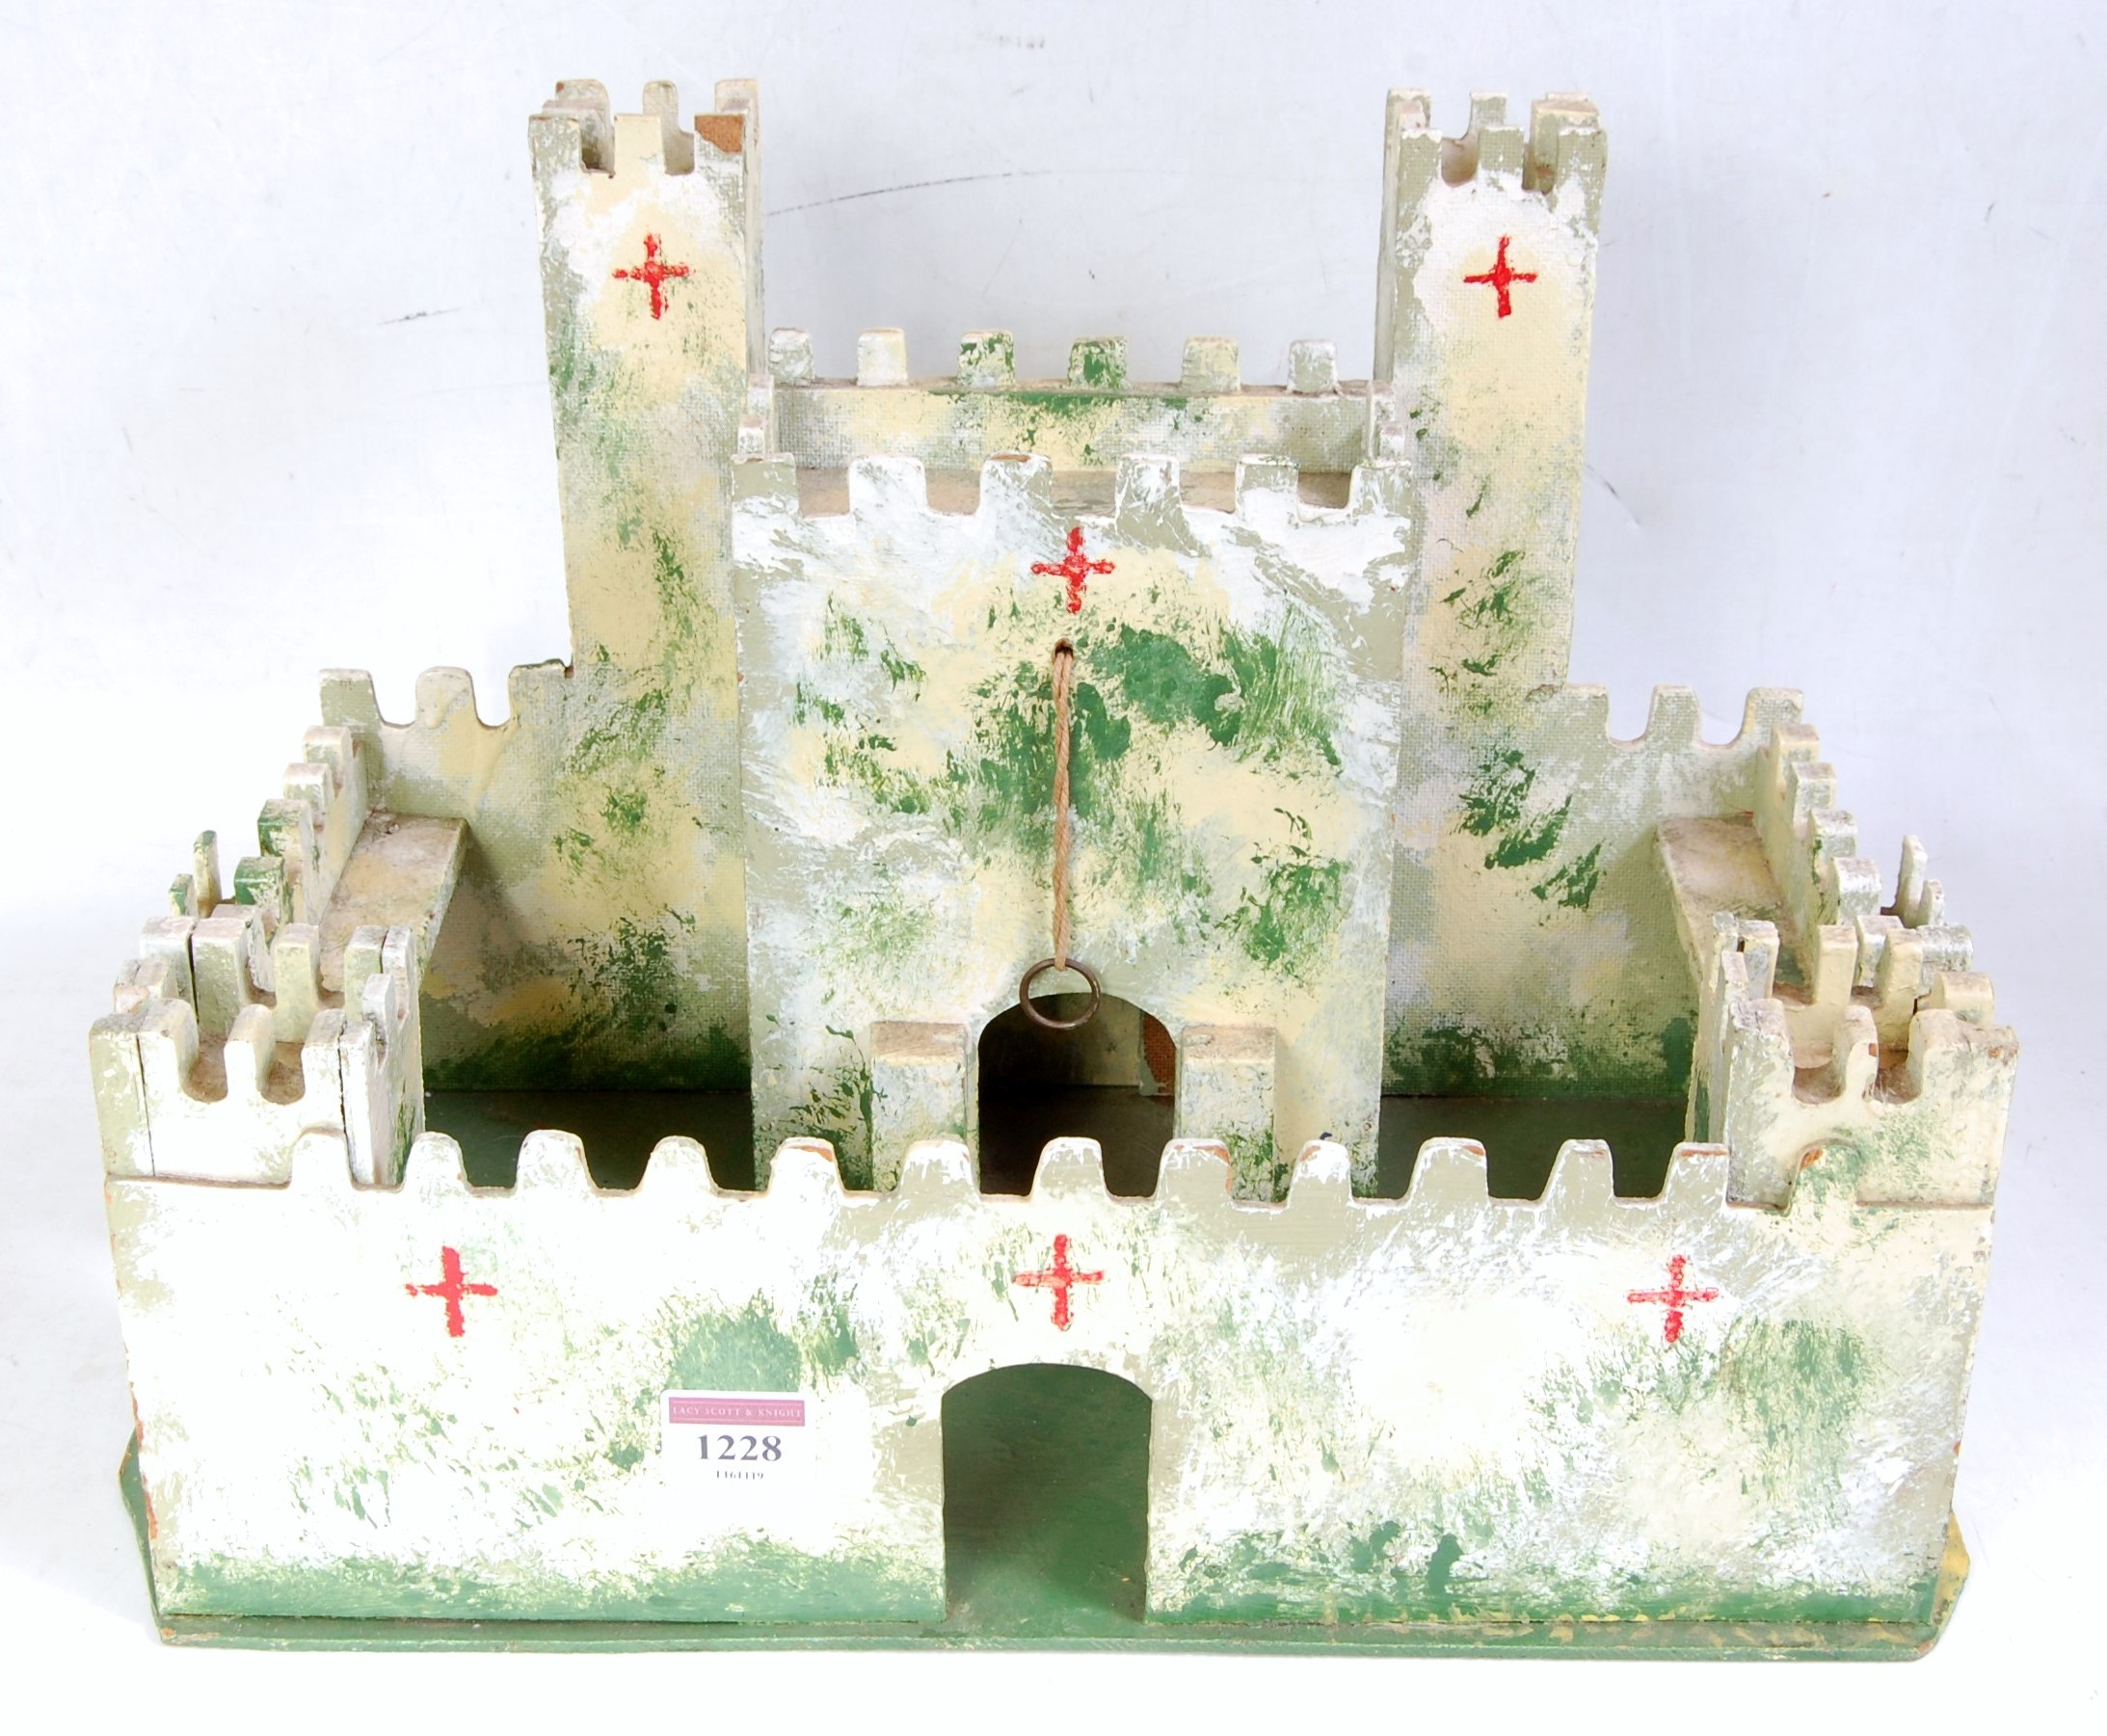 A home-made scratch built wooden model of a medieval fort, hand painted with drawbridge, finished in